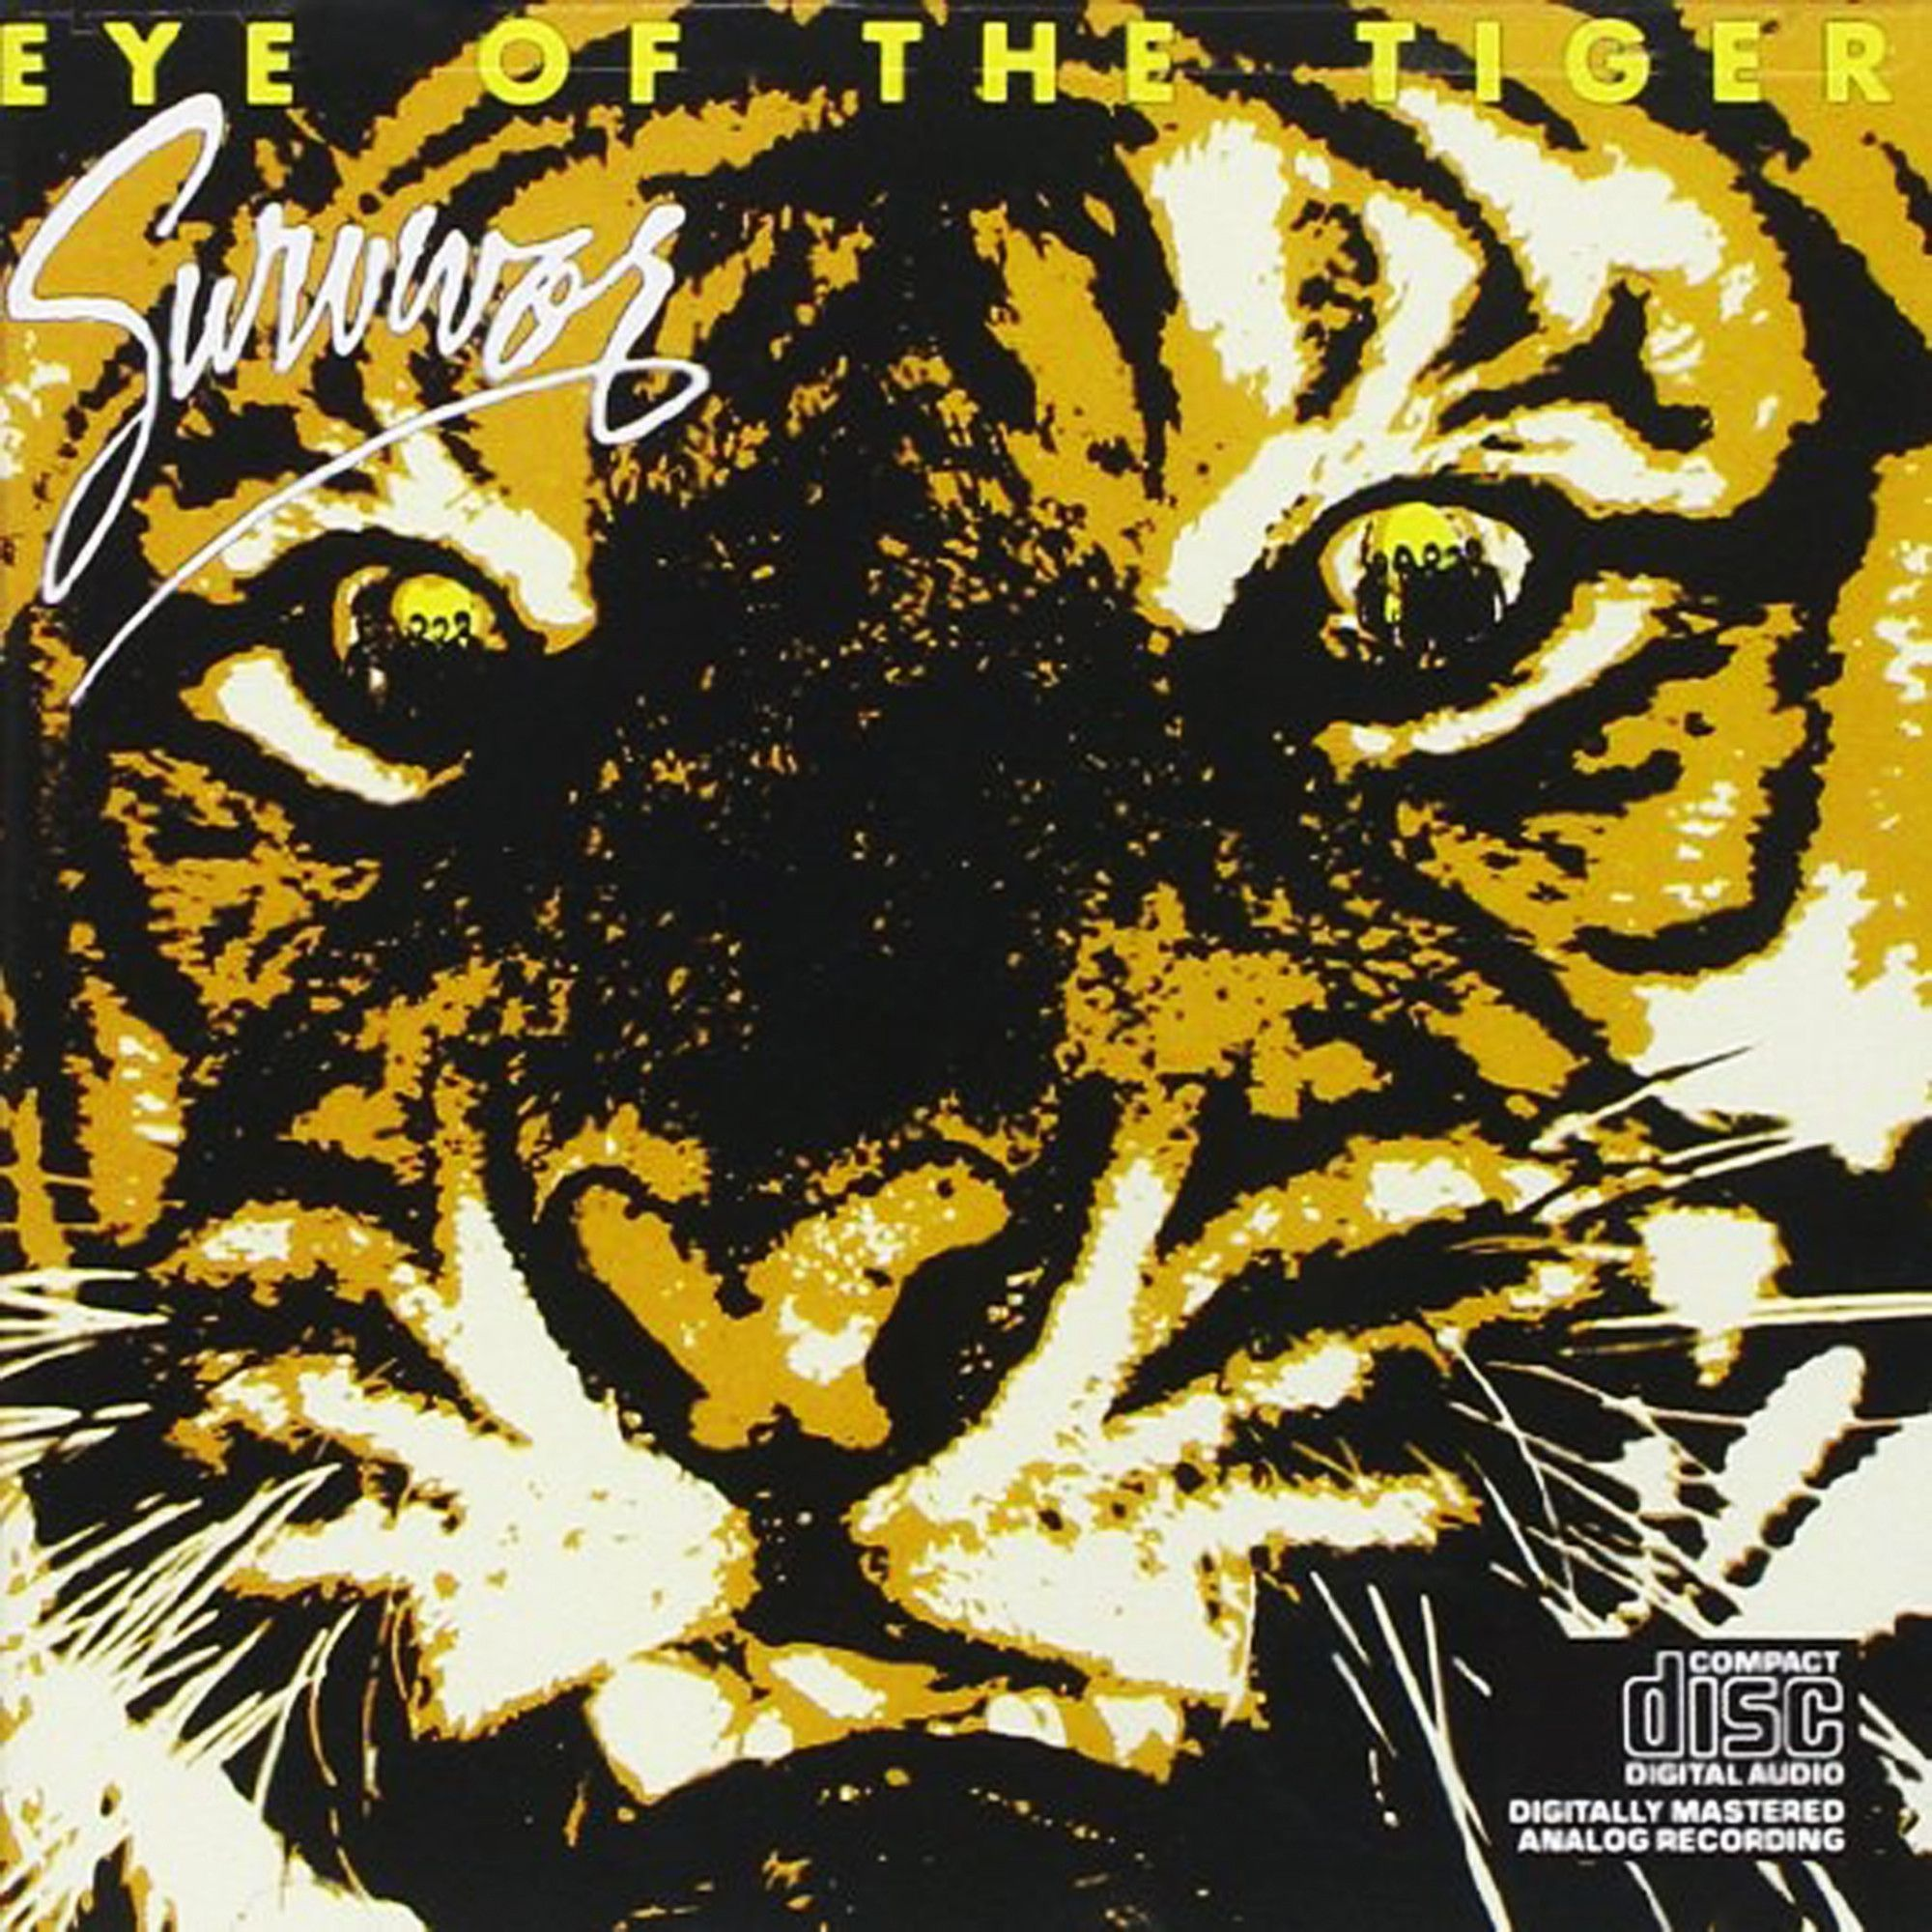 Remarkable Survivor Eye Of The Tiger Cd Eye Of The Tiger Products And Eyes Hairstyle Inspiration Daily Dogsangcom